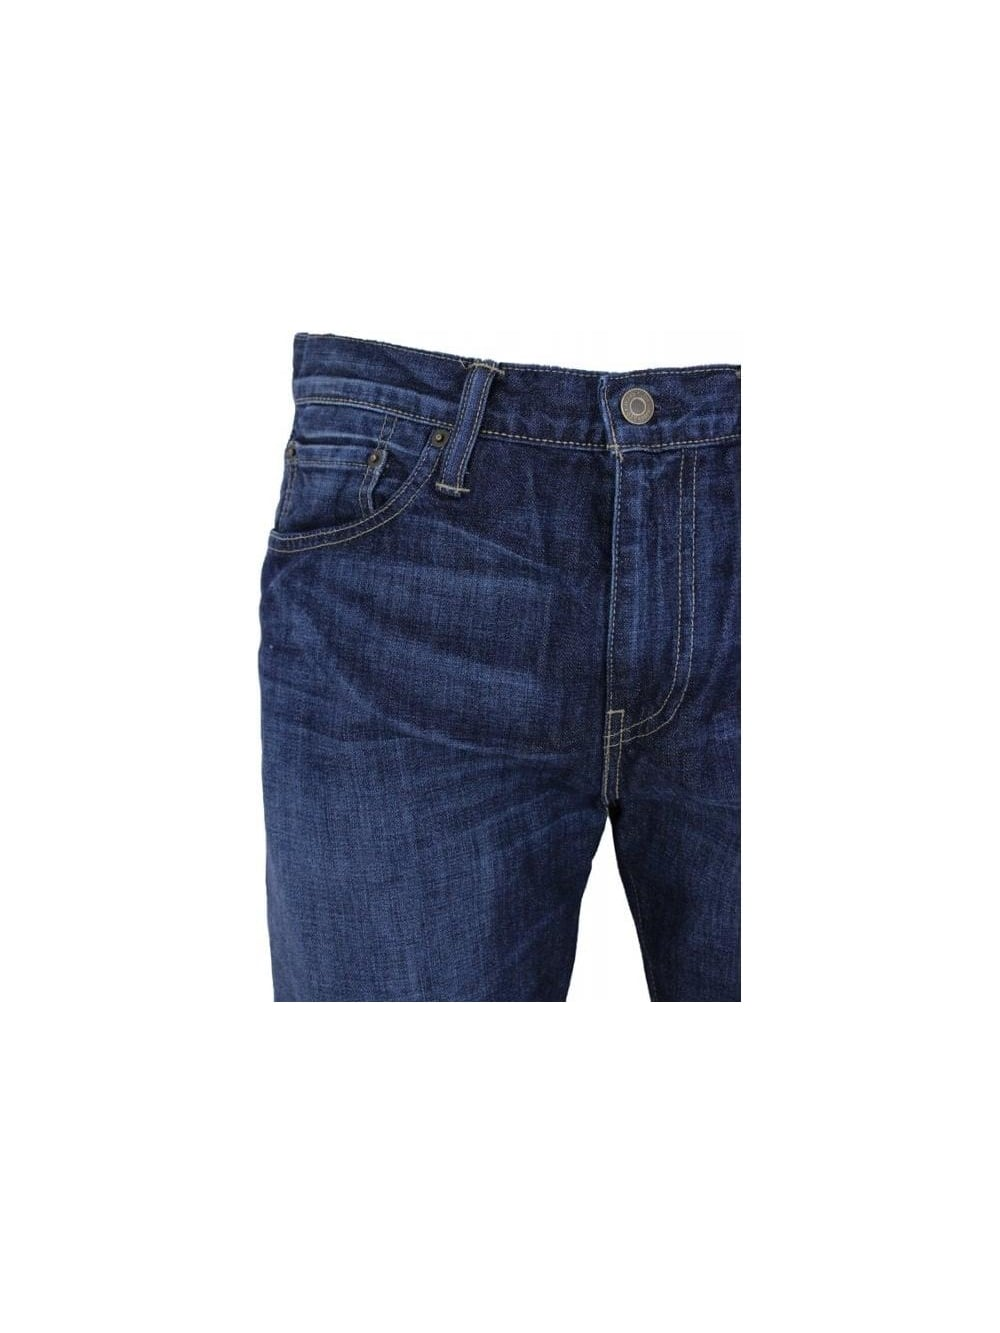 09b9caf7ebb73d Levis 508 Regular Taper Fit Jeans in Quincy - Northern Threads